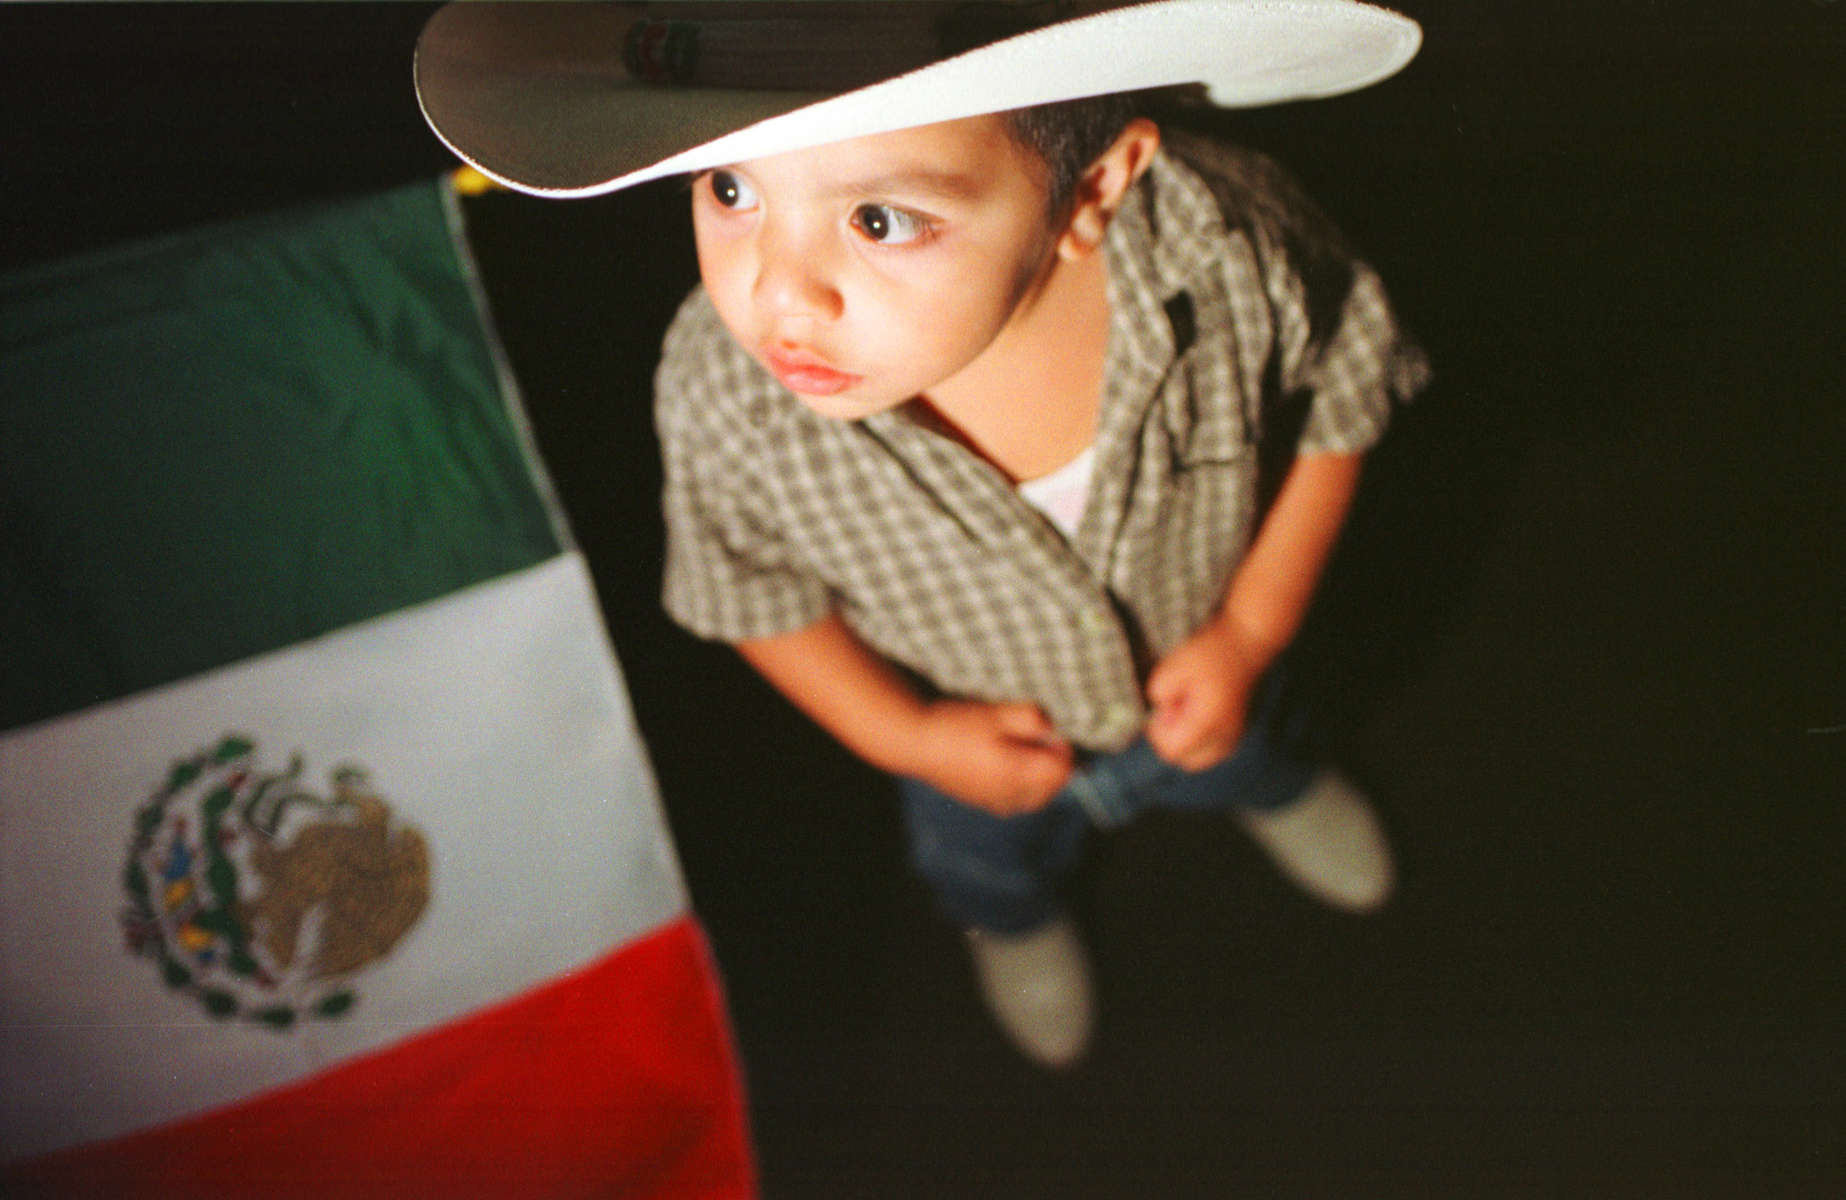 Junior Renteria, one years old, celebrates Mexican Independence Day with his family at St. Patricks Church in Indianapolis, IN.